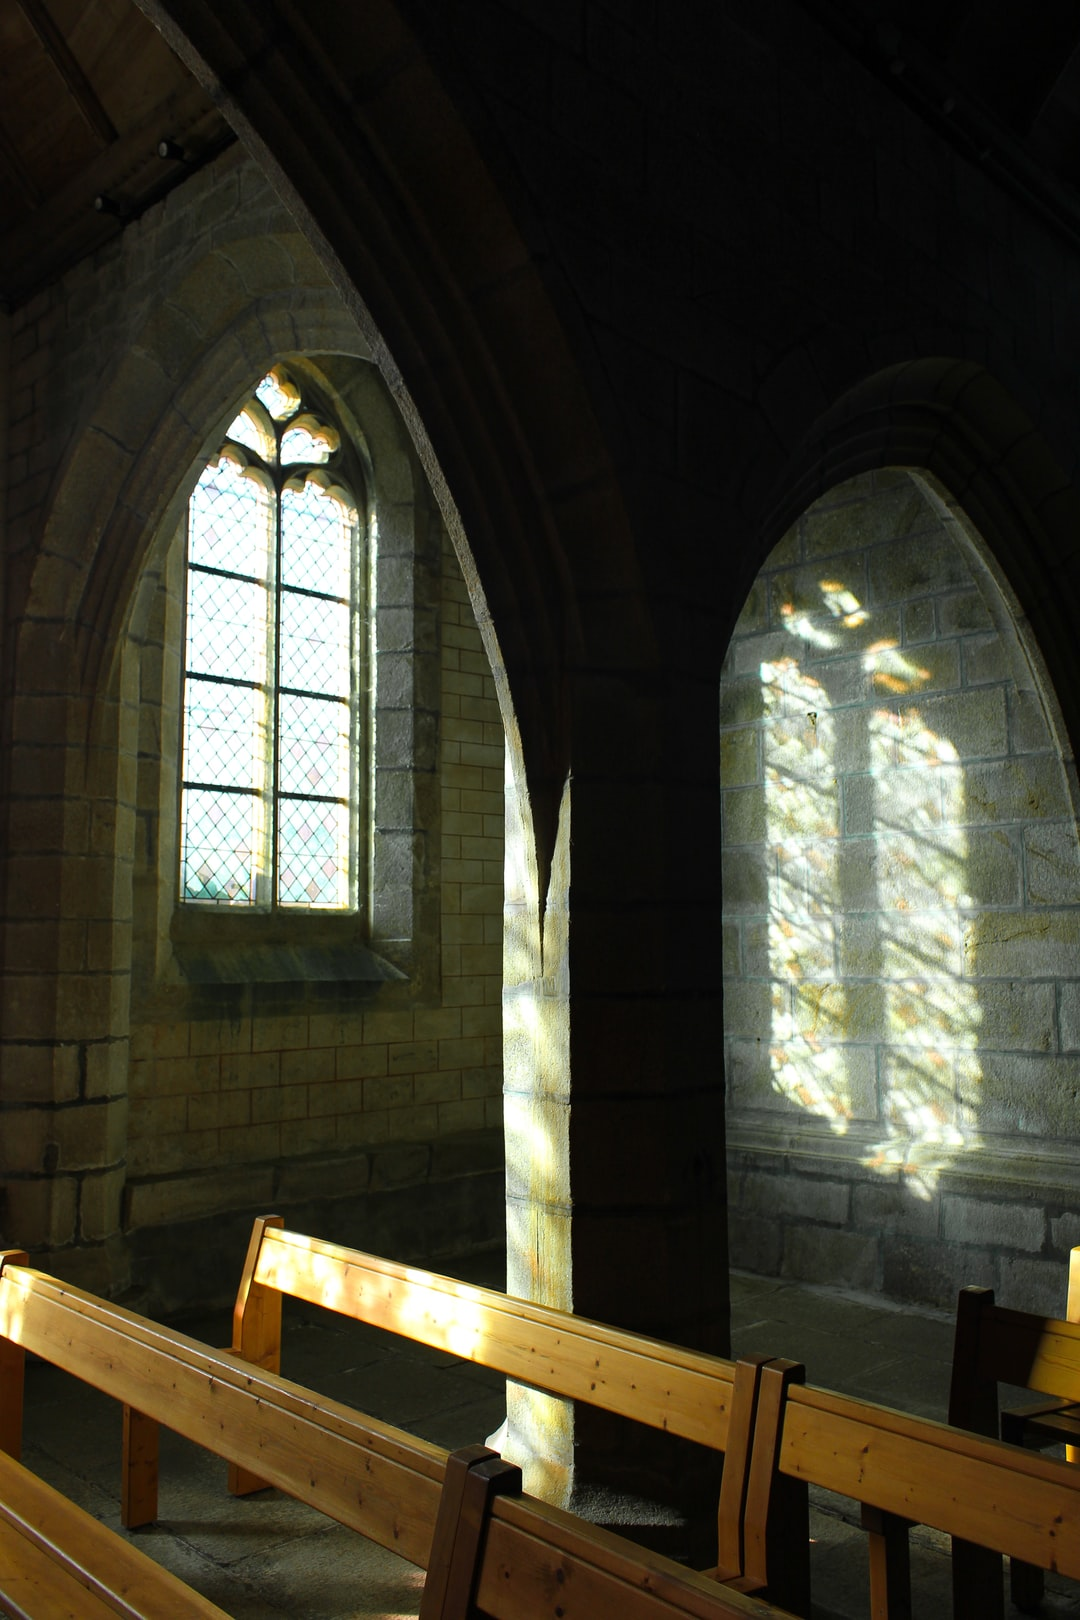 Early morning in a lost chapel. Nobody, except the holy light...